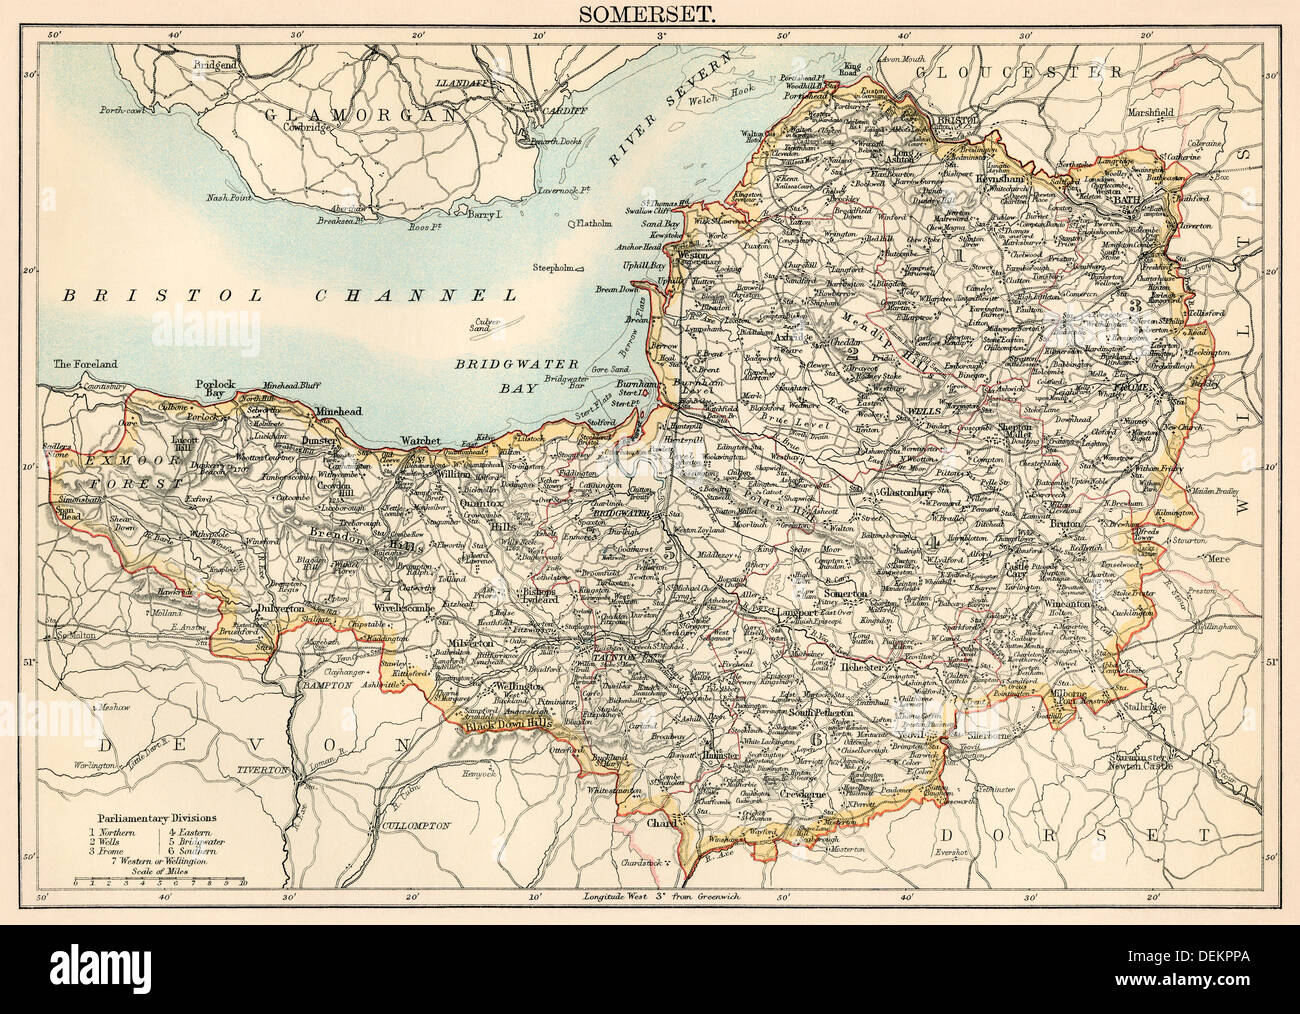 Map of Somerset England 1870s Stock Photo 60671250 Alamy